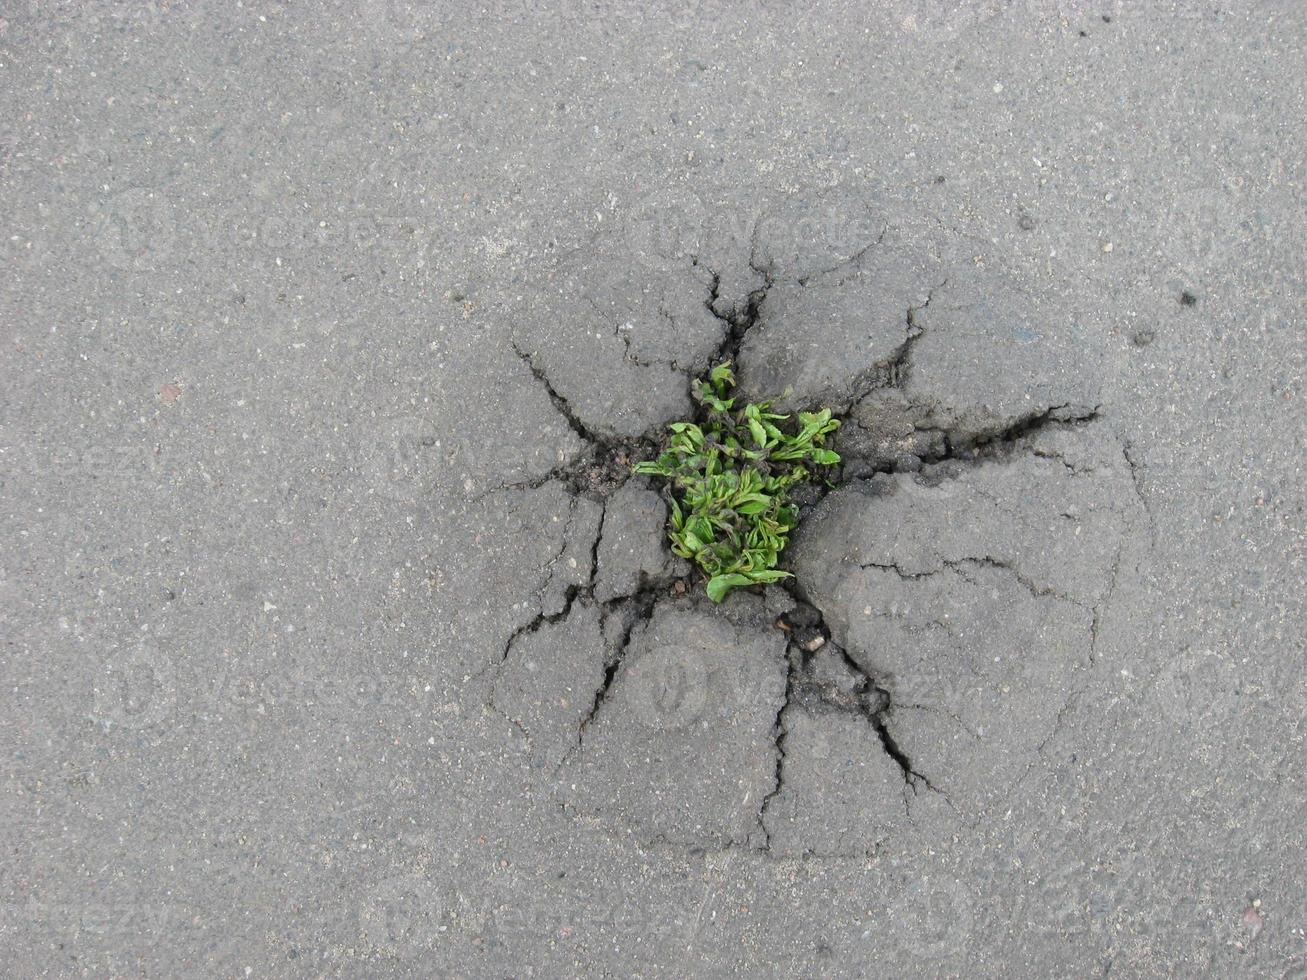 weed growing through crack in pavement photo